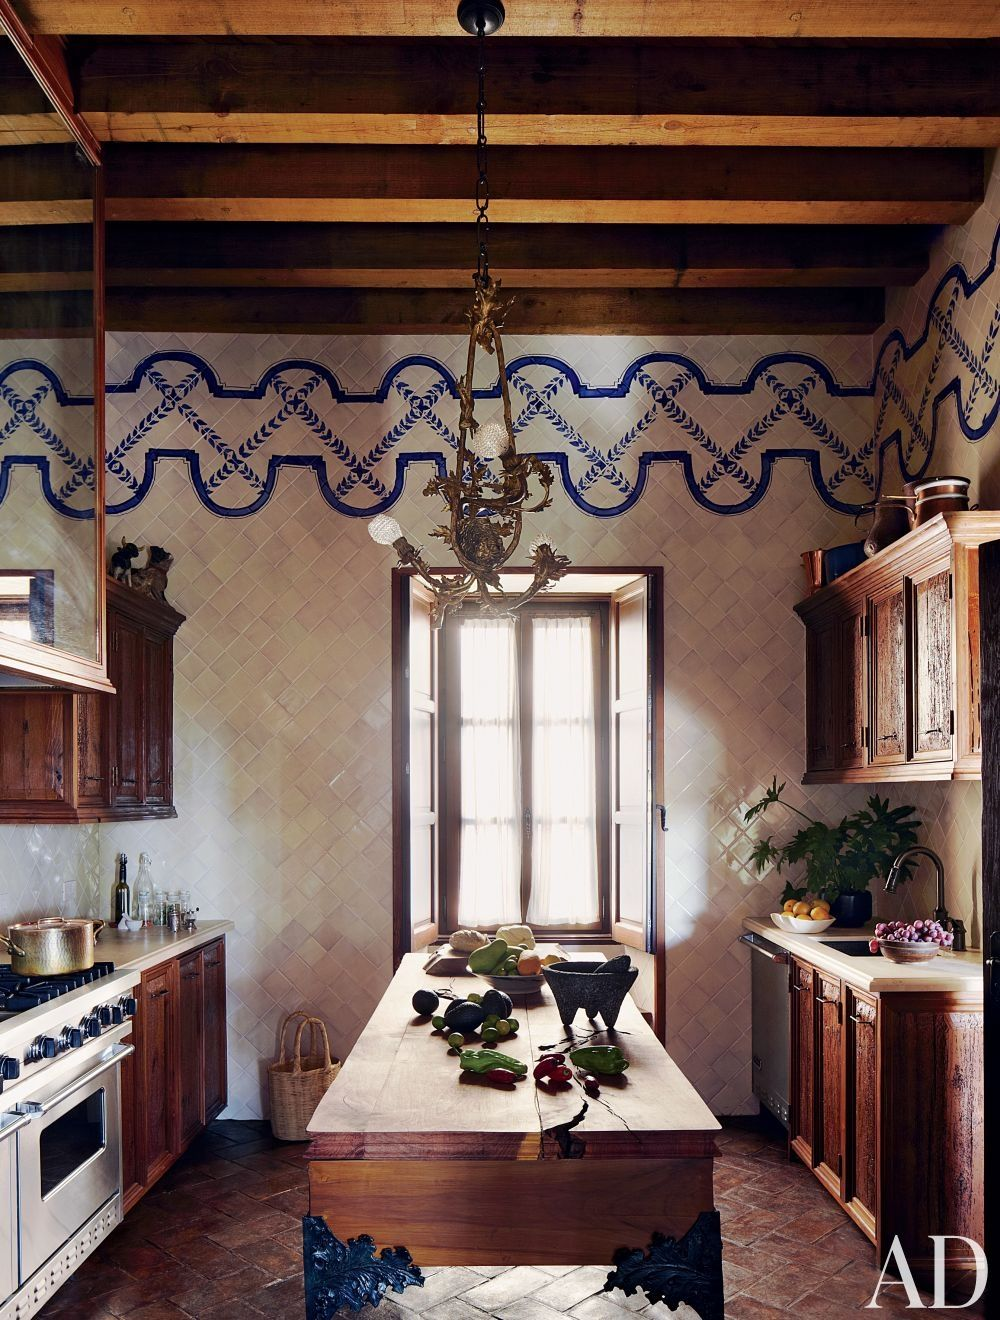 exotic kitchen by fisher weisman in san miguel de allende mexico exotic kitchen by fisher weisman in san miguel de allende mexico